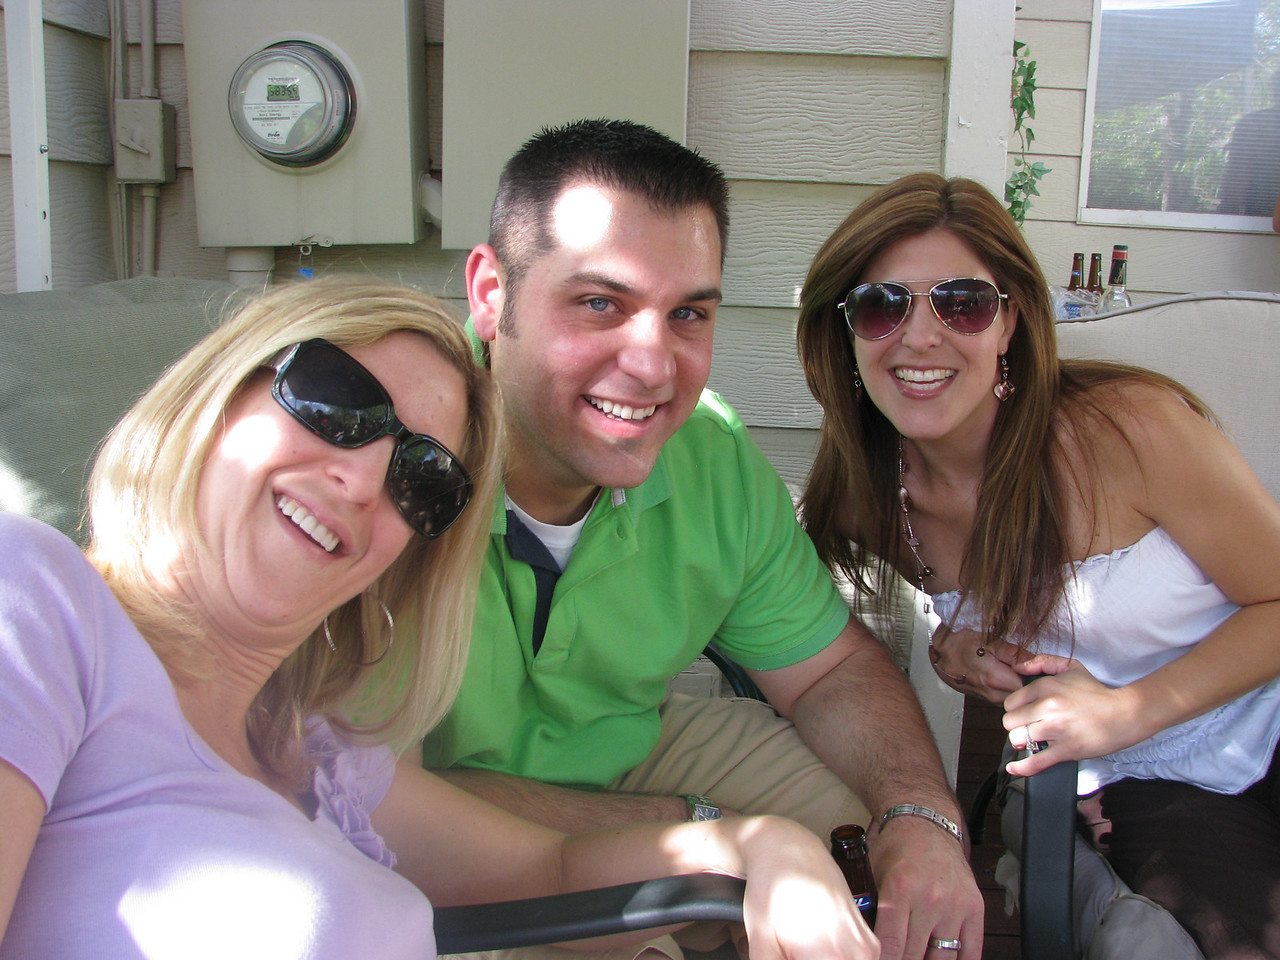 Tiff, Mike and Laura